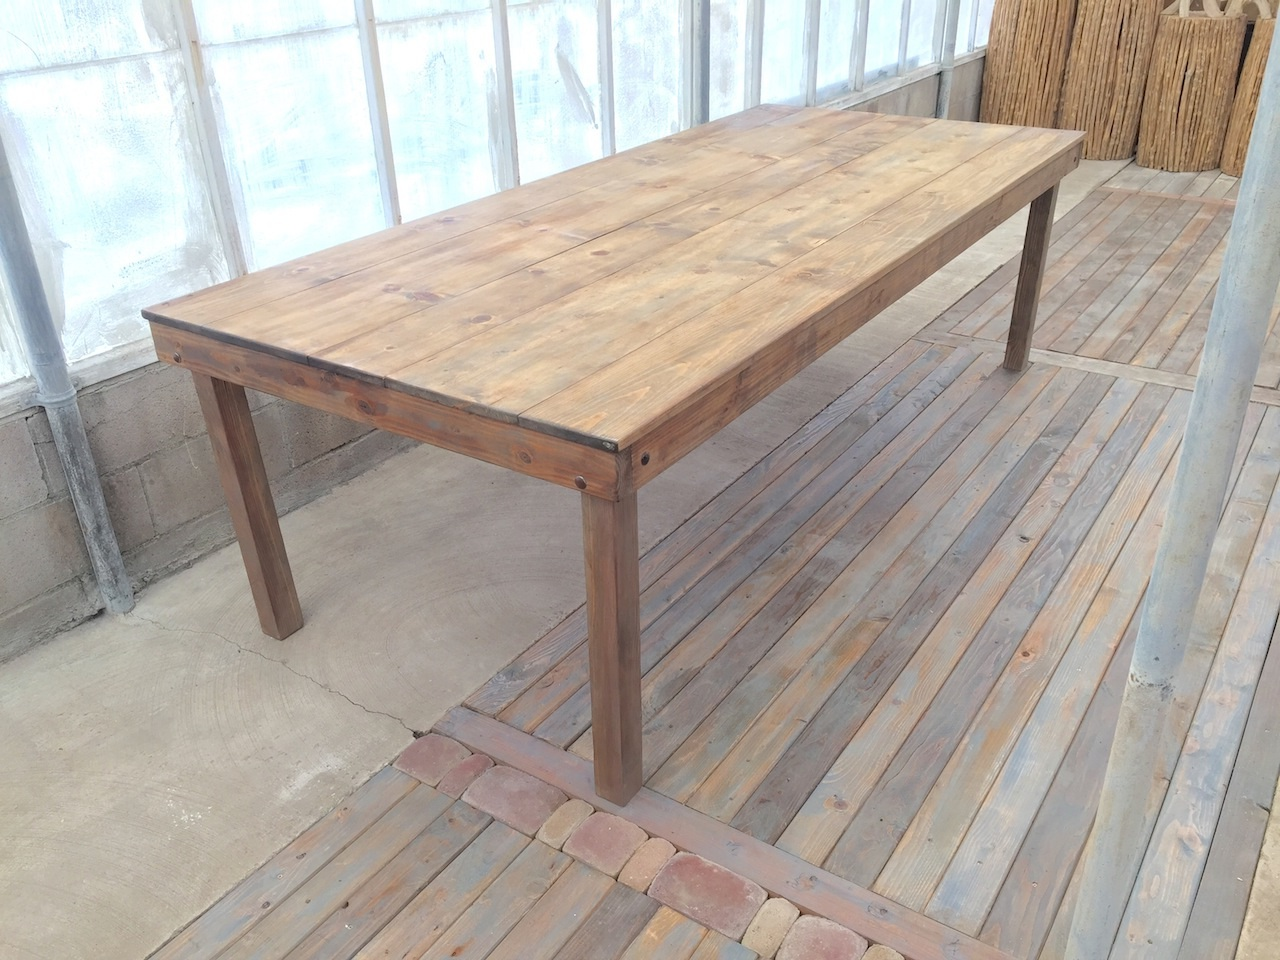 Weathered Gray Table w Wood Legs